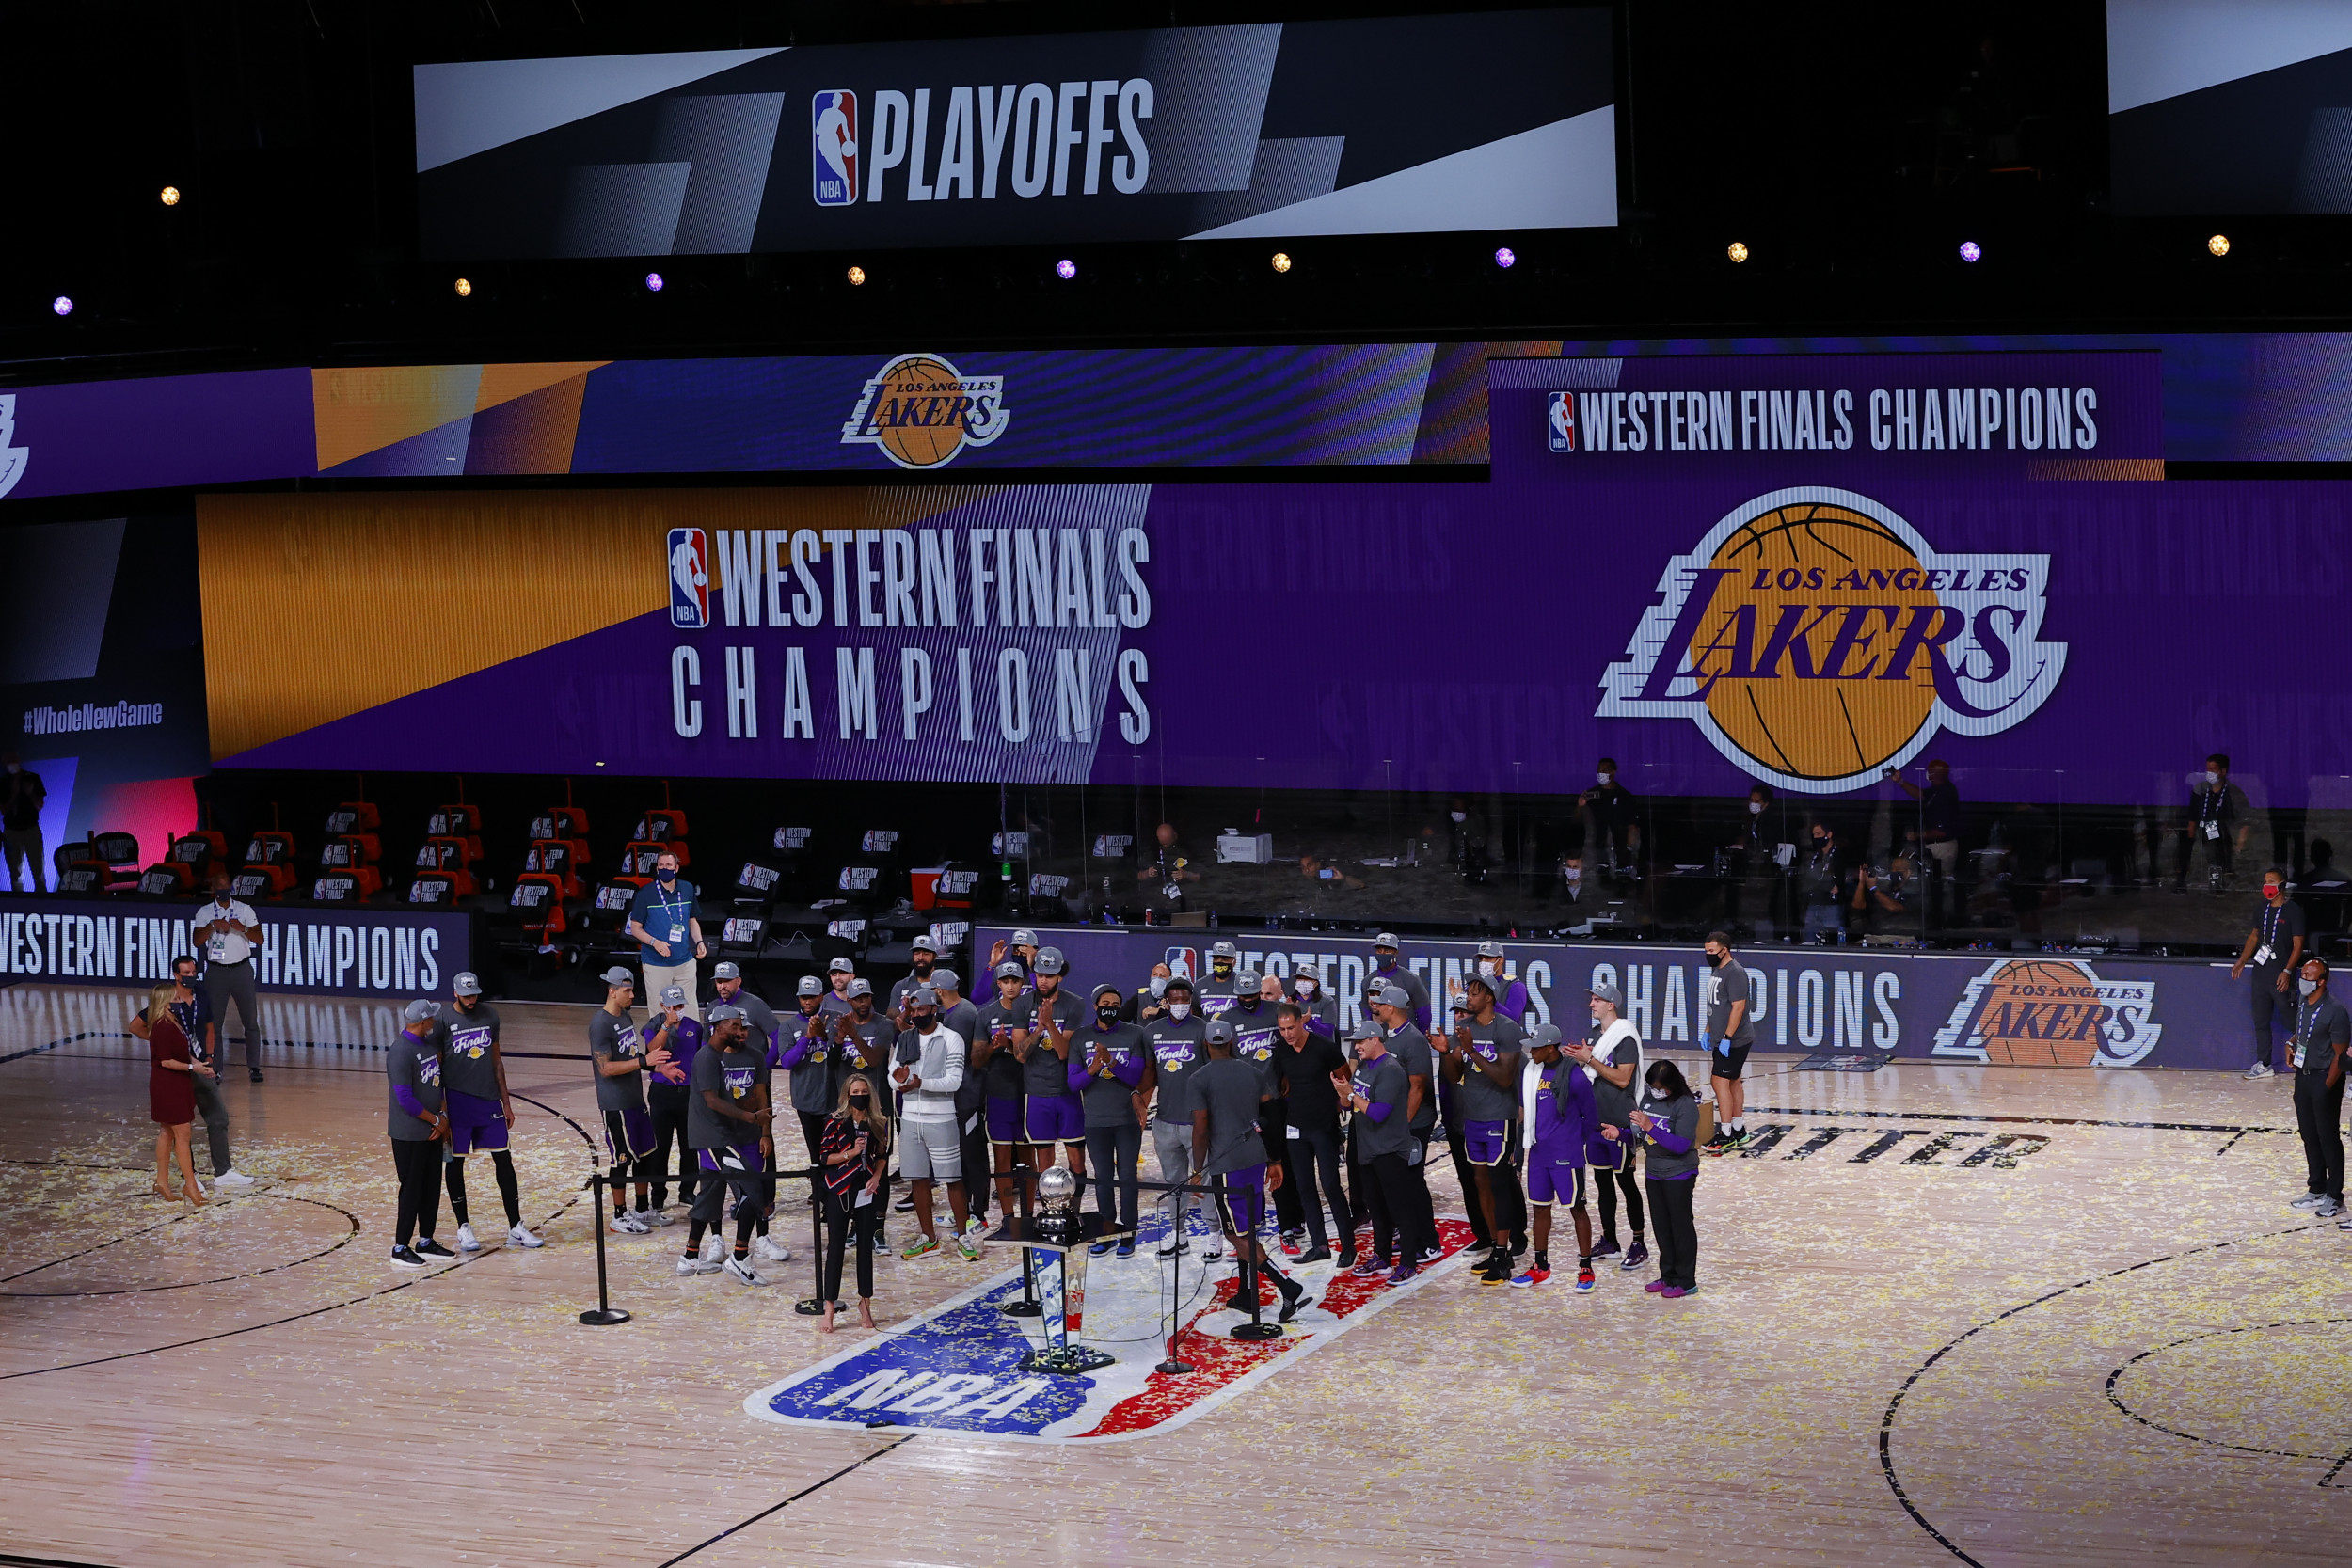 Nba Finals Schedule 2020 Lakers Vs Heat Dates Times Tv Channel Live Stream